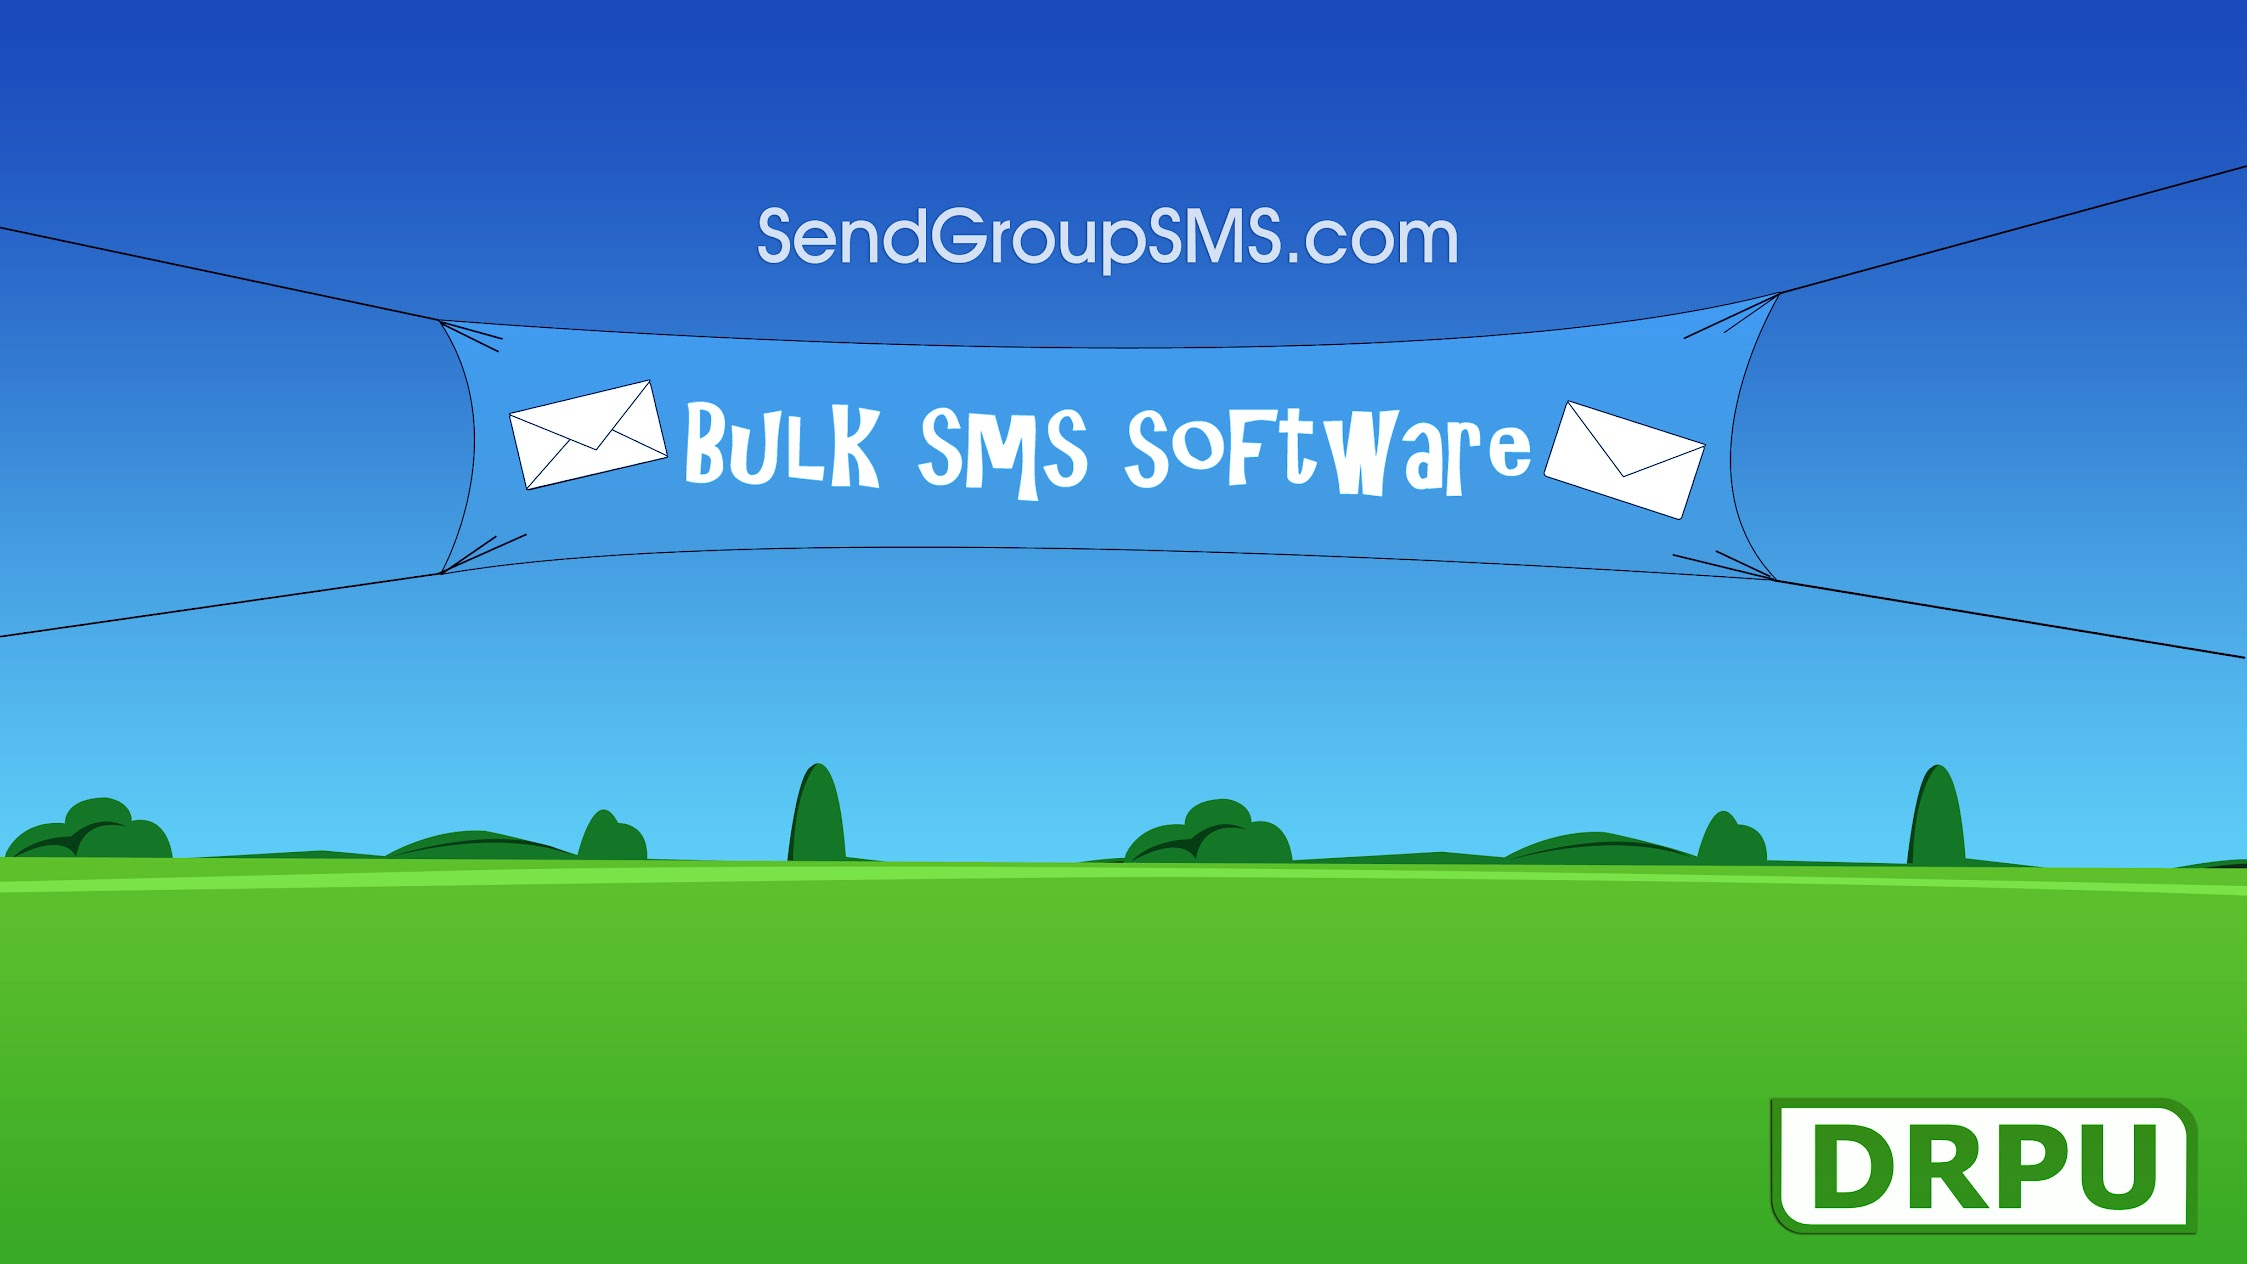 SendGroupSMS.com Bulk SMS Software